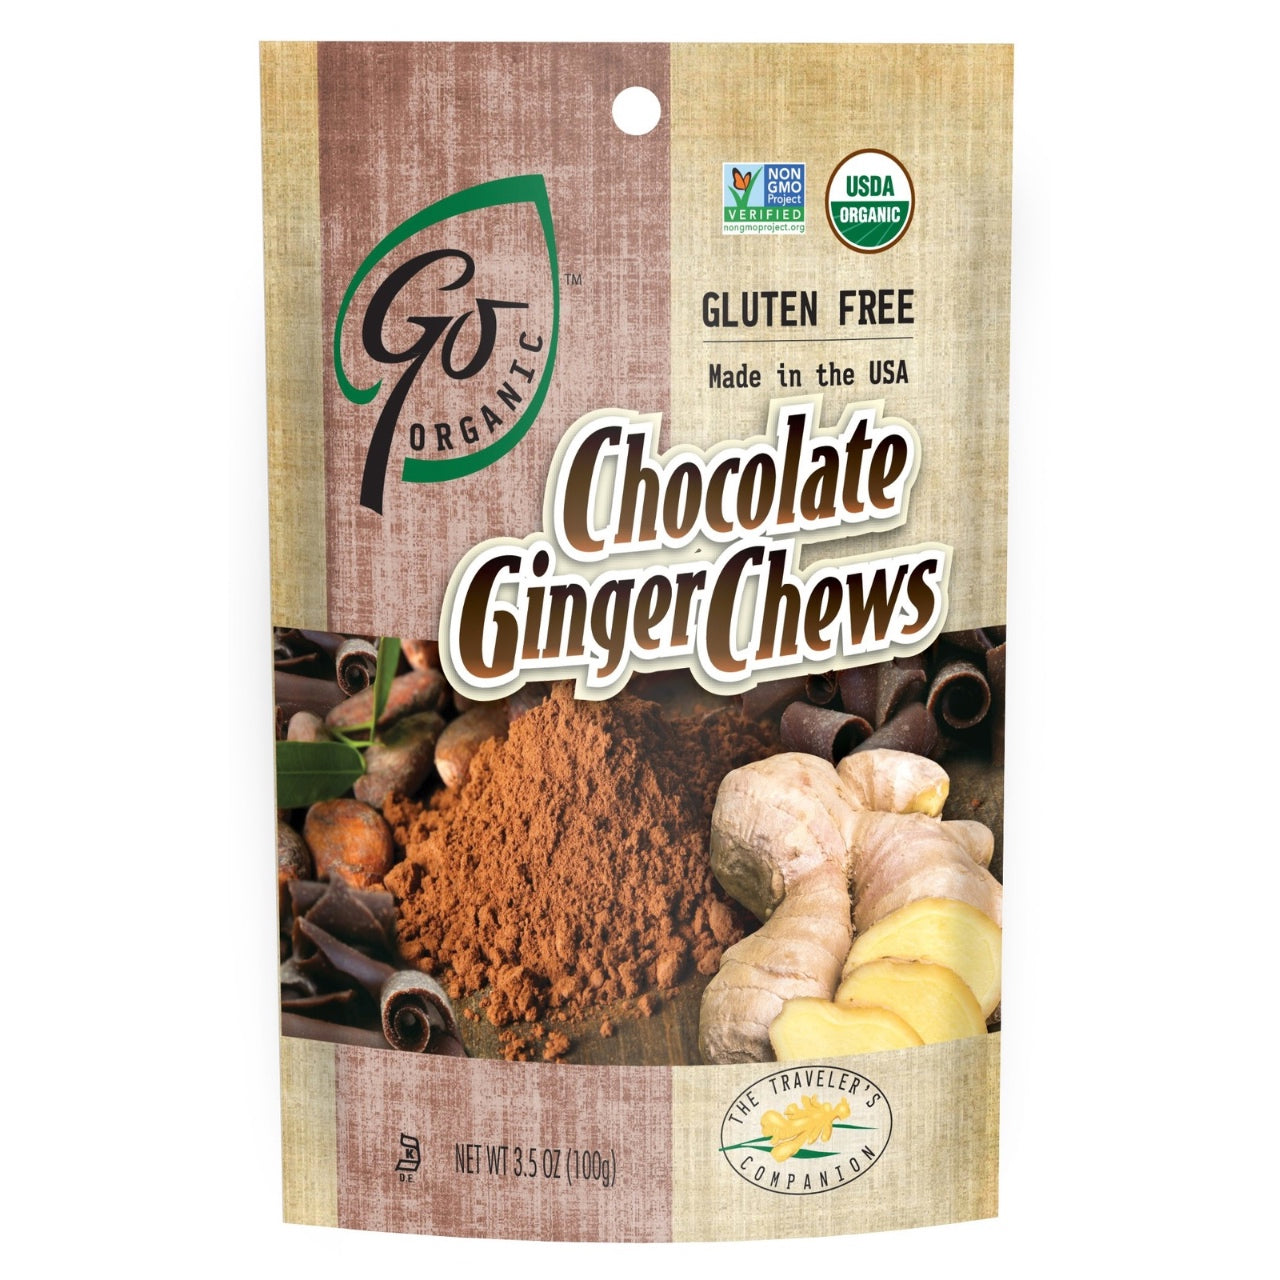 Go Organic Chocolate Ginger Chews